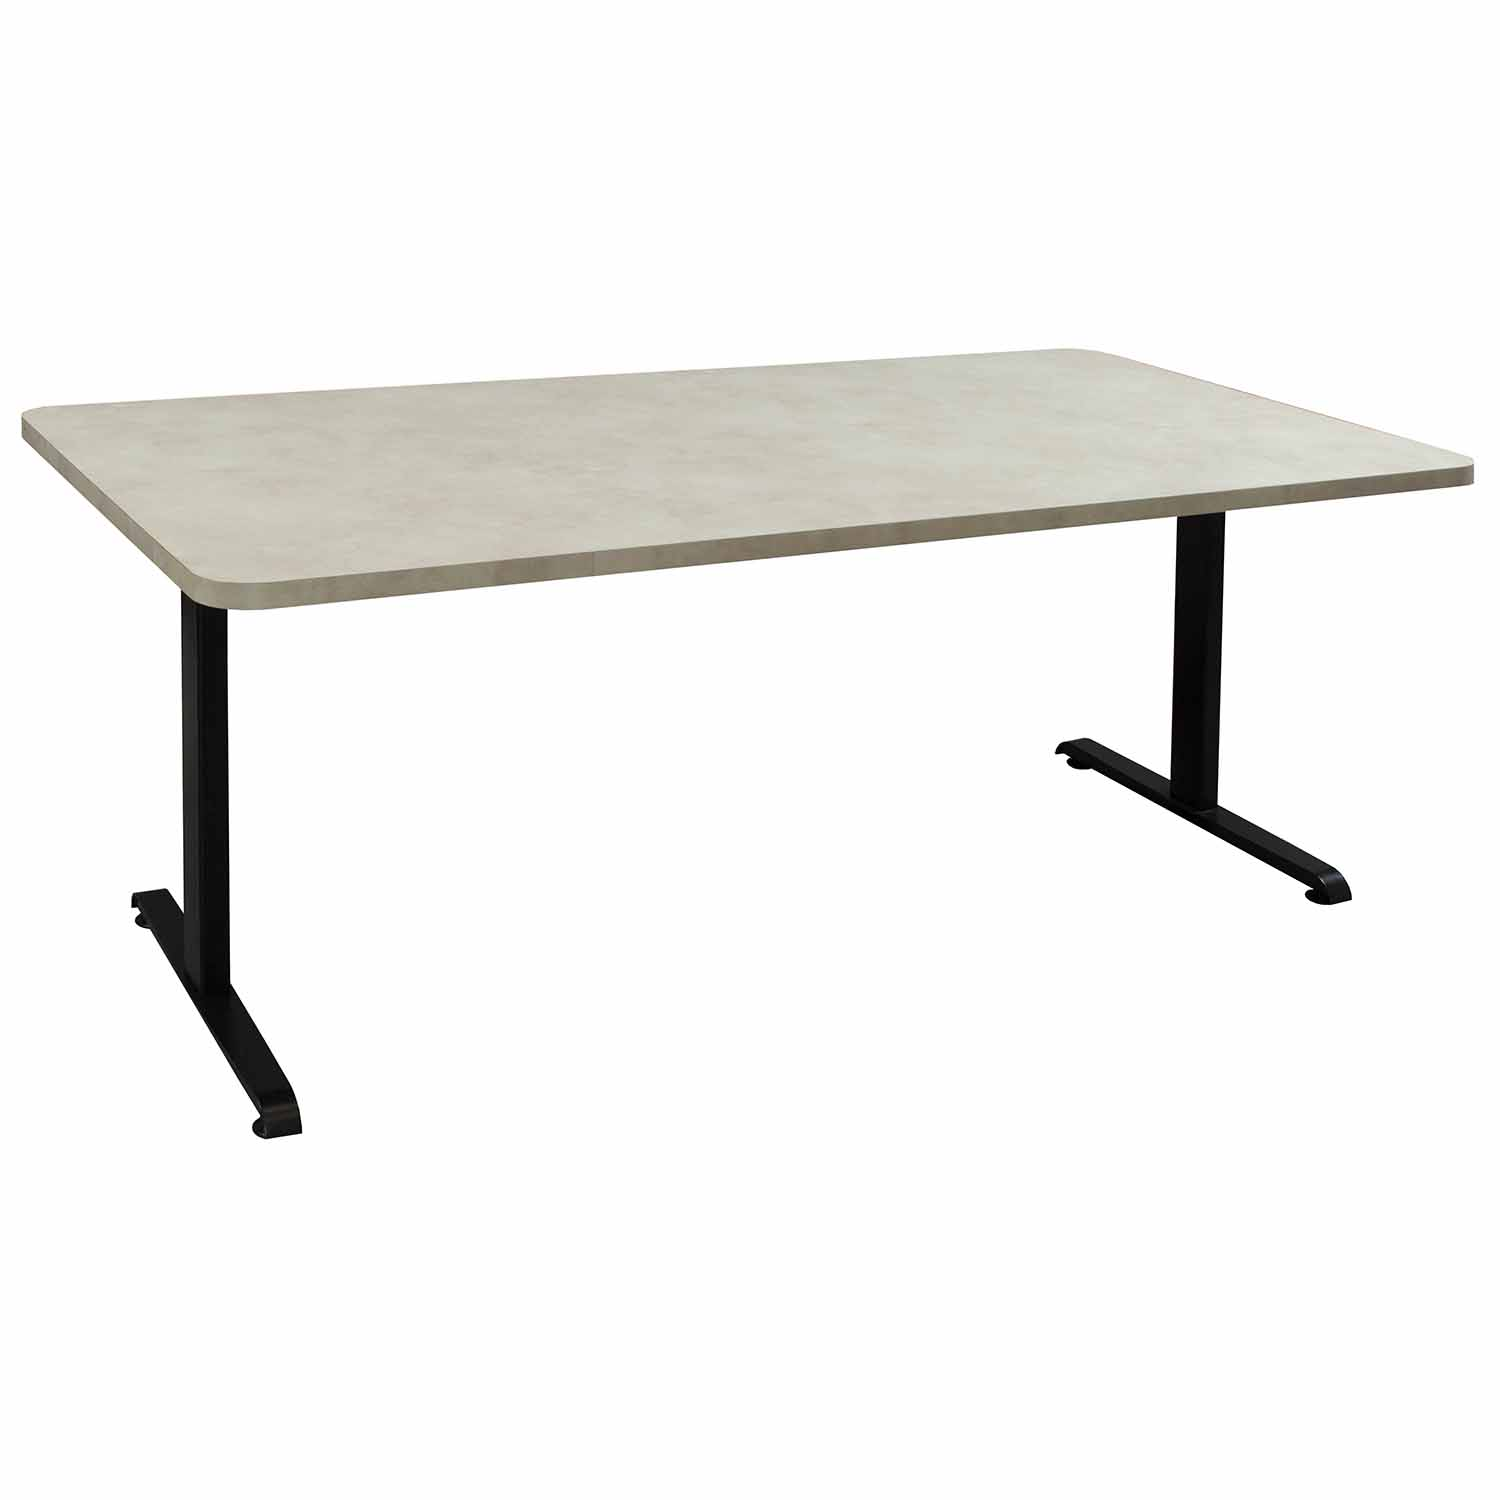 Laminate 36 215 72 Inch Used Training Table Creme National